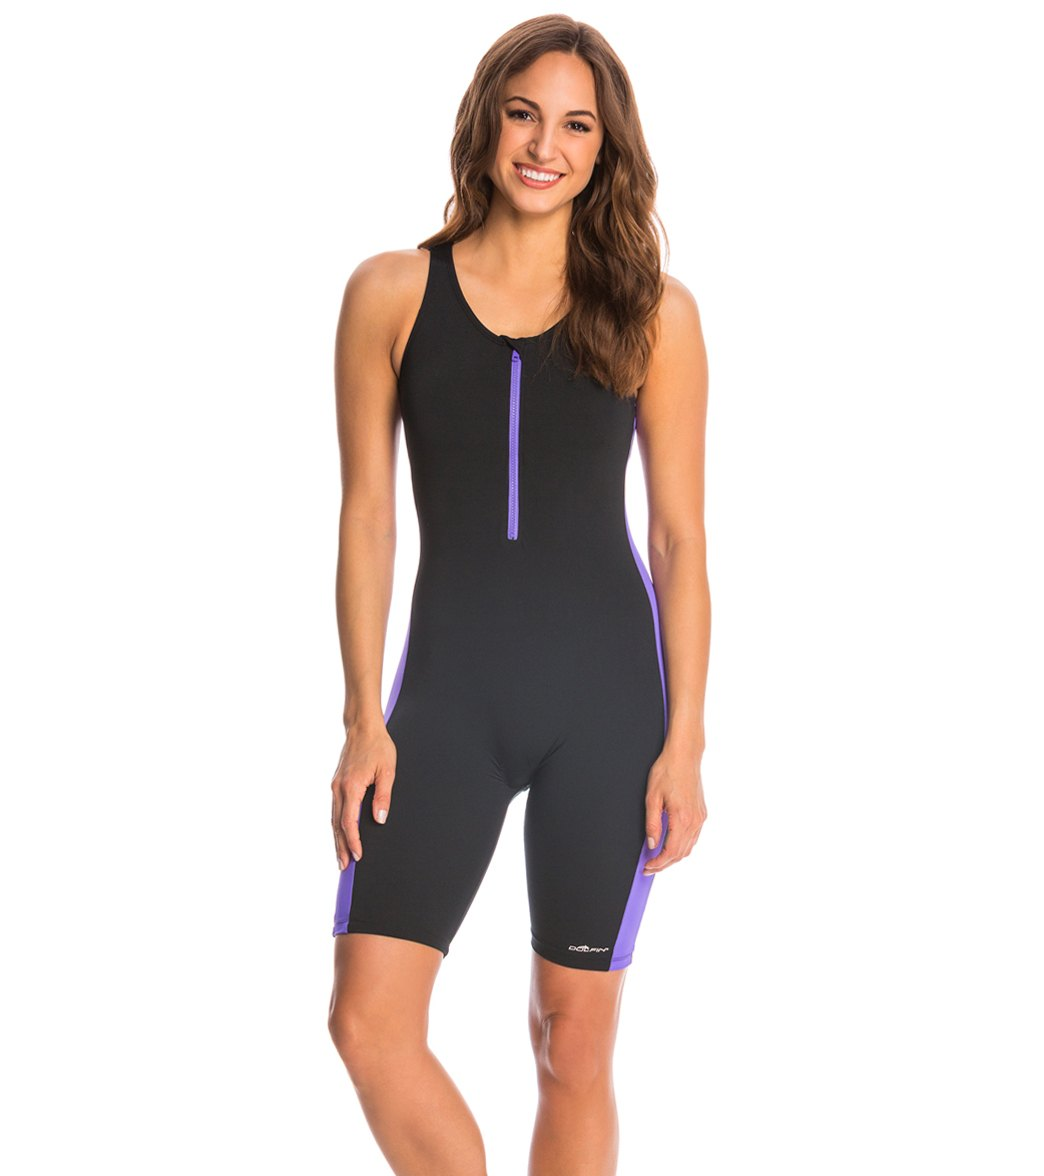 39261342c2 Dolfin Aquashape Zip-Front One Piece Aquatard Swimsuit at SwimOutlet.com -  Free Shipping